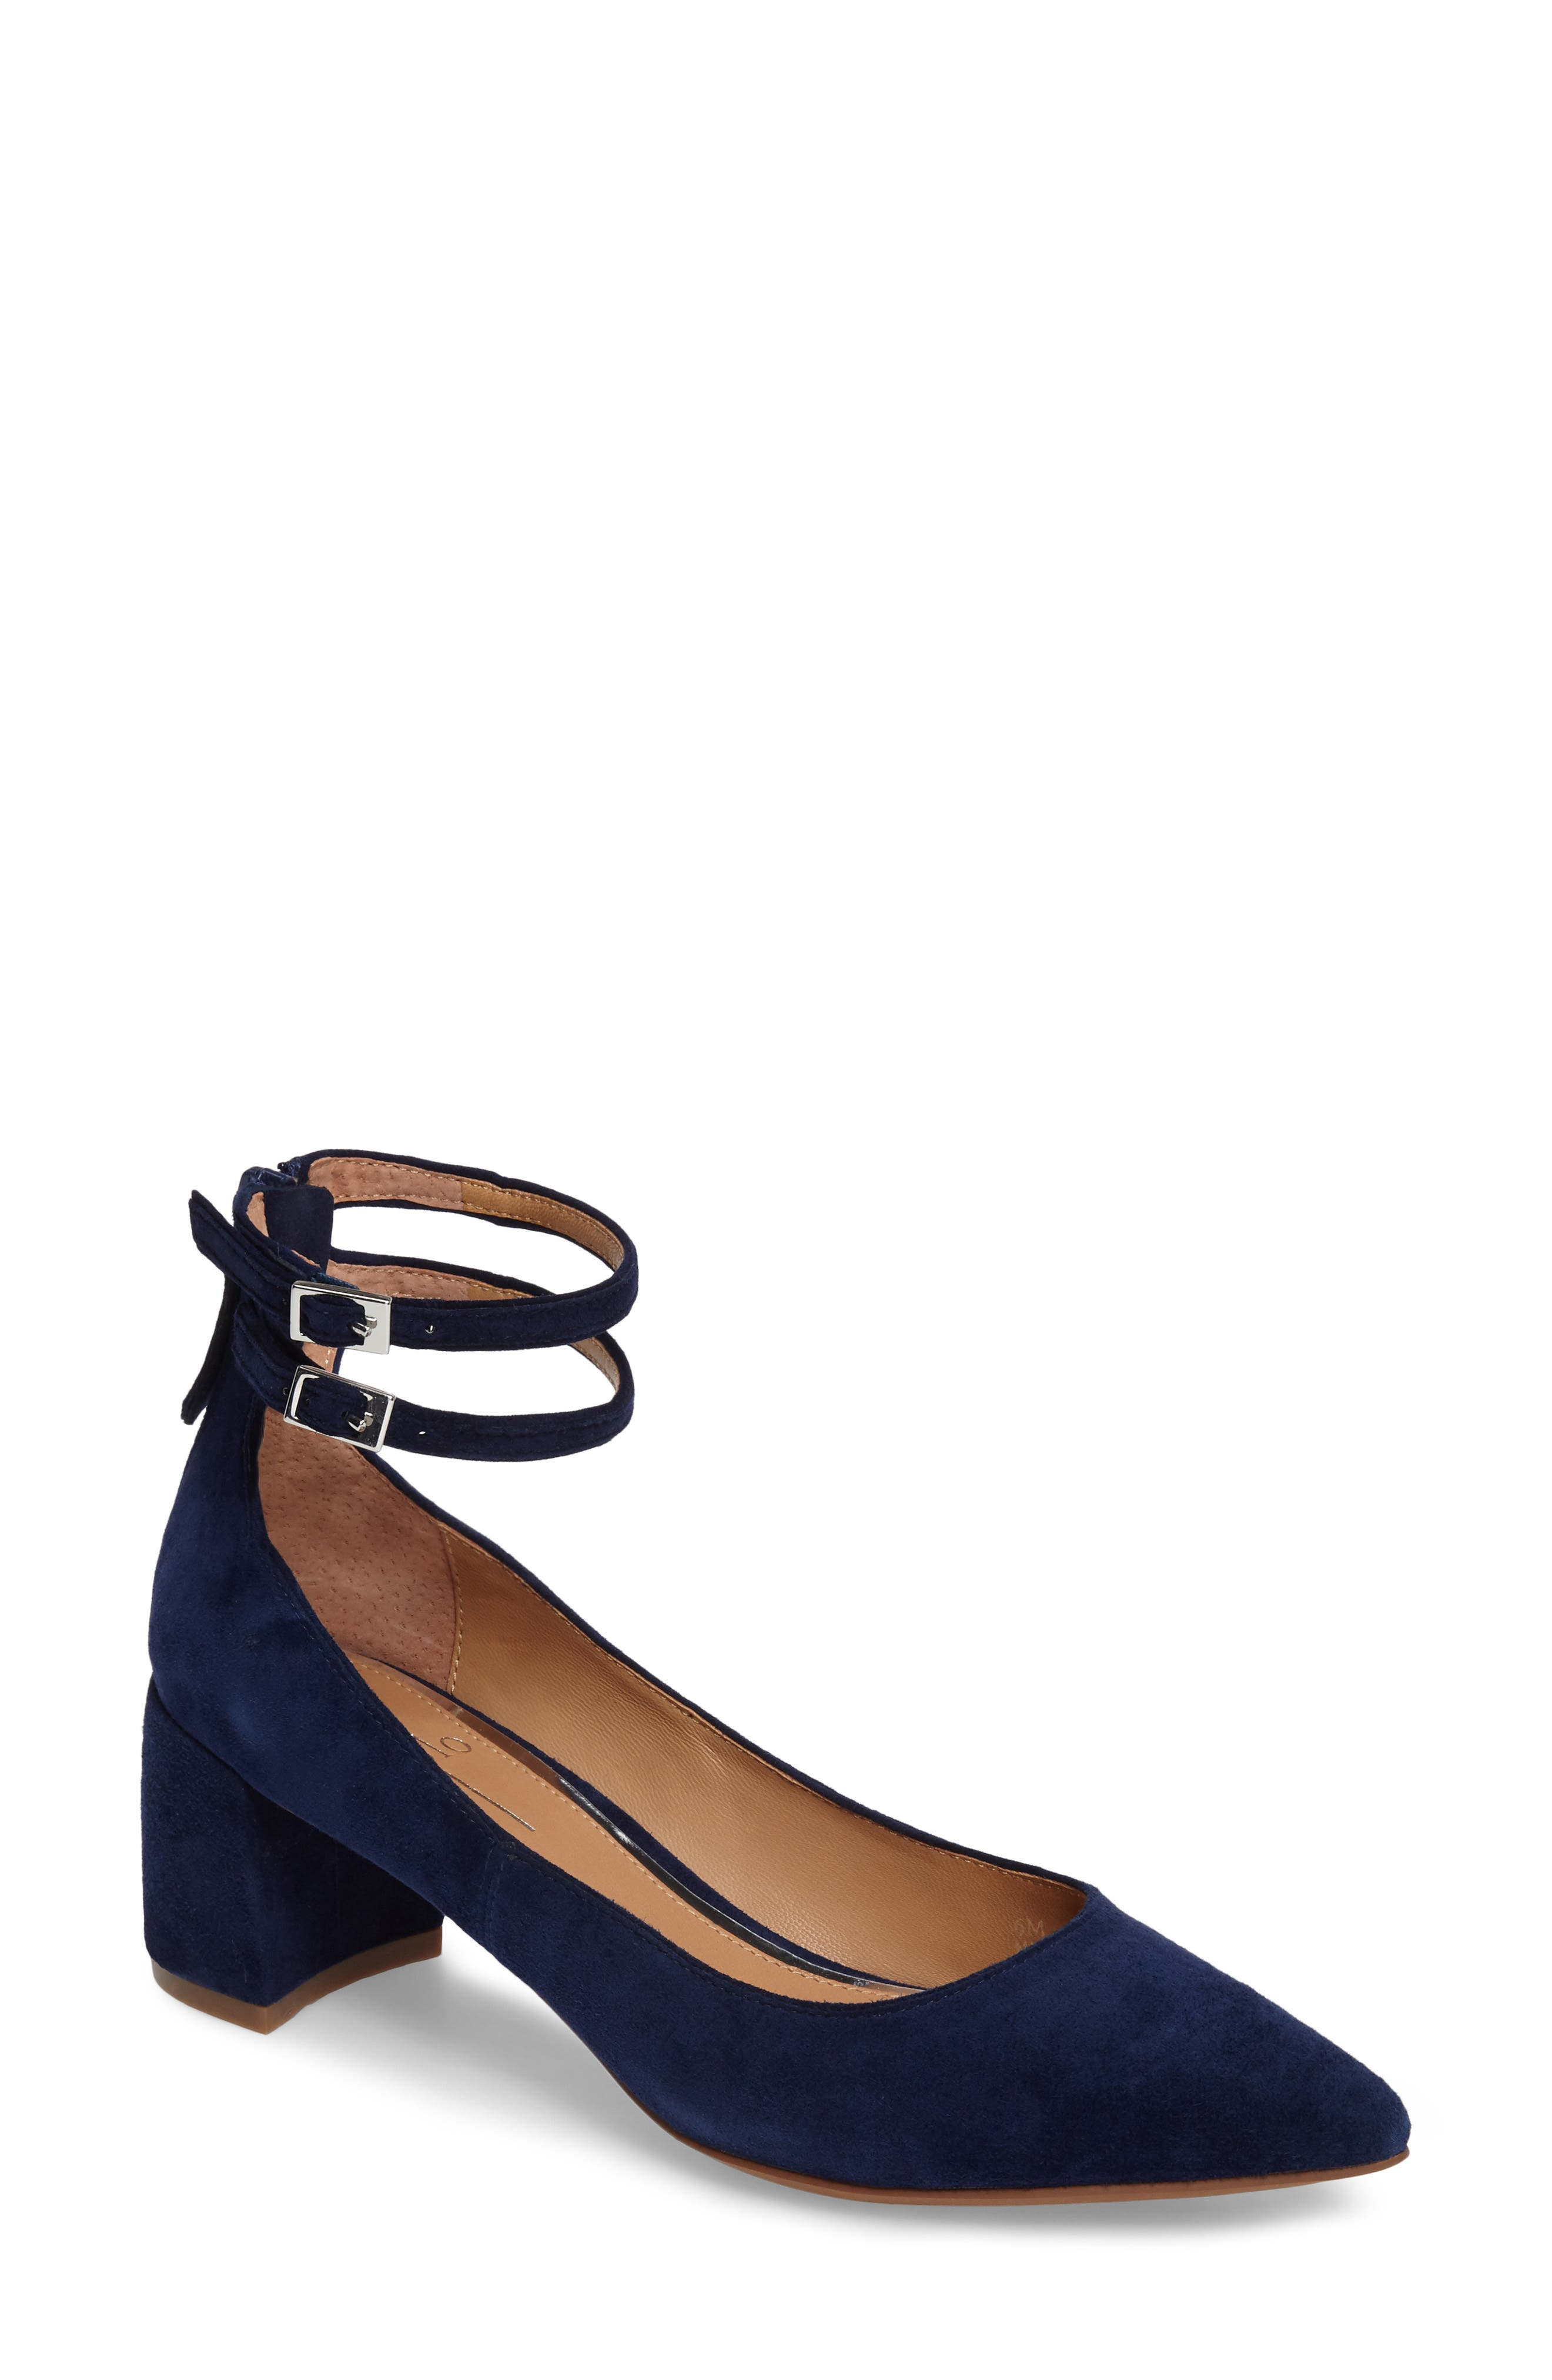 'Noel' Pointy Toe Ankle Strap Pump,                         Main,                         color, 412